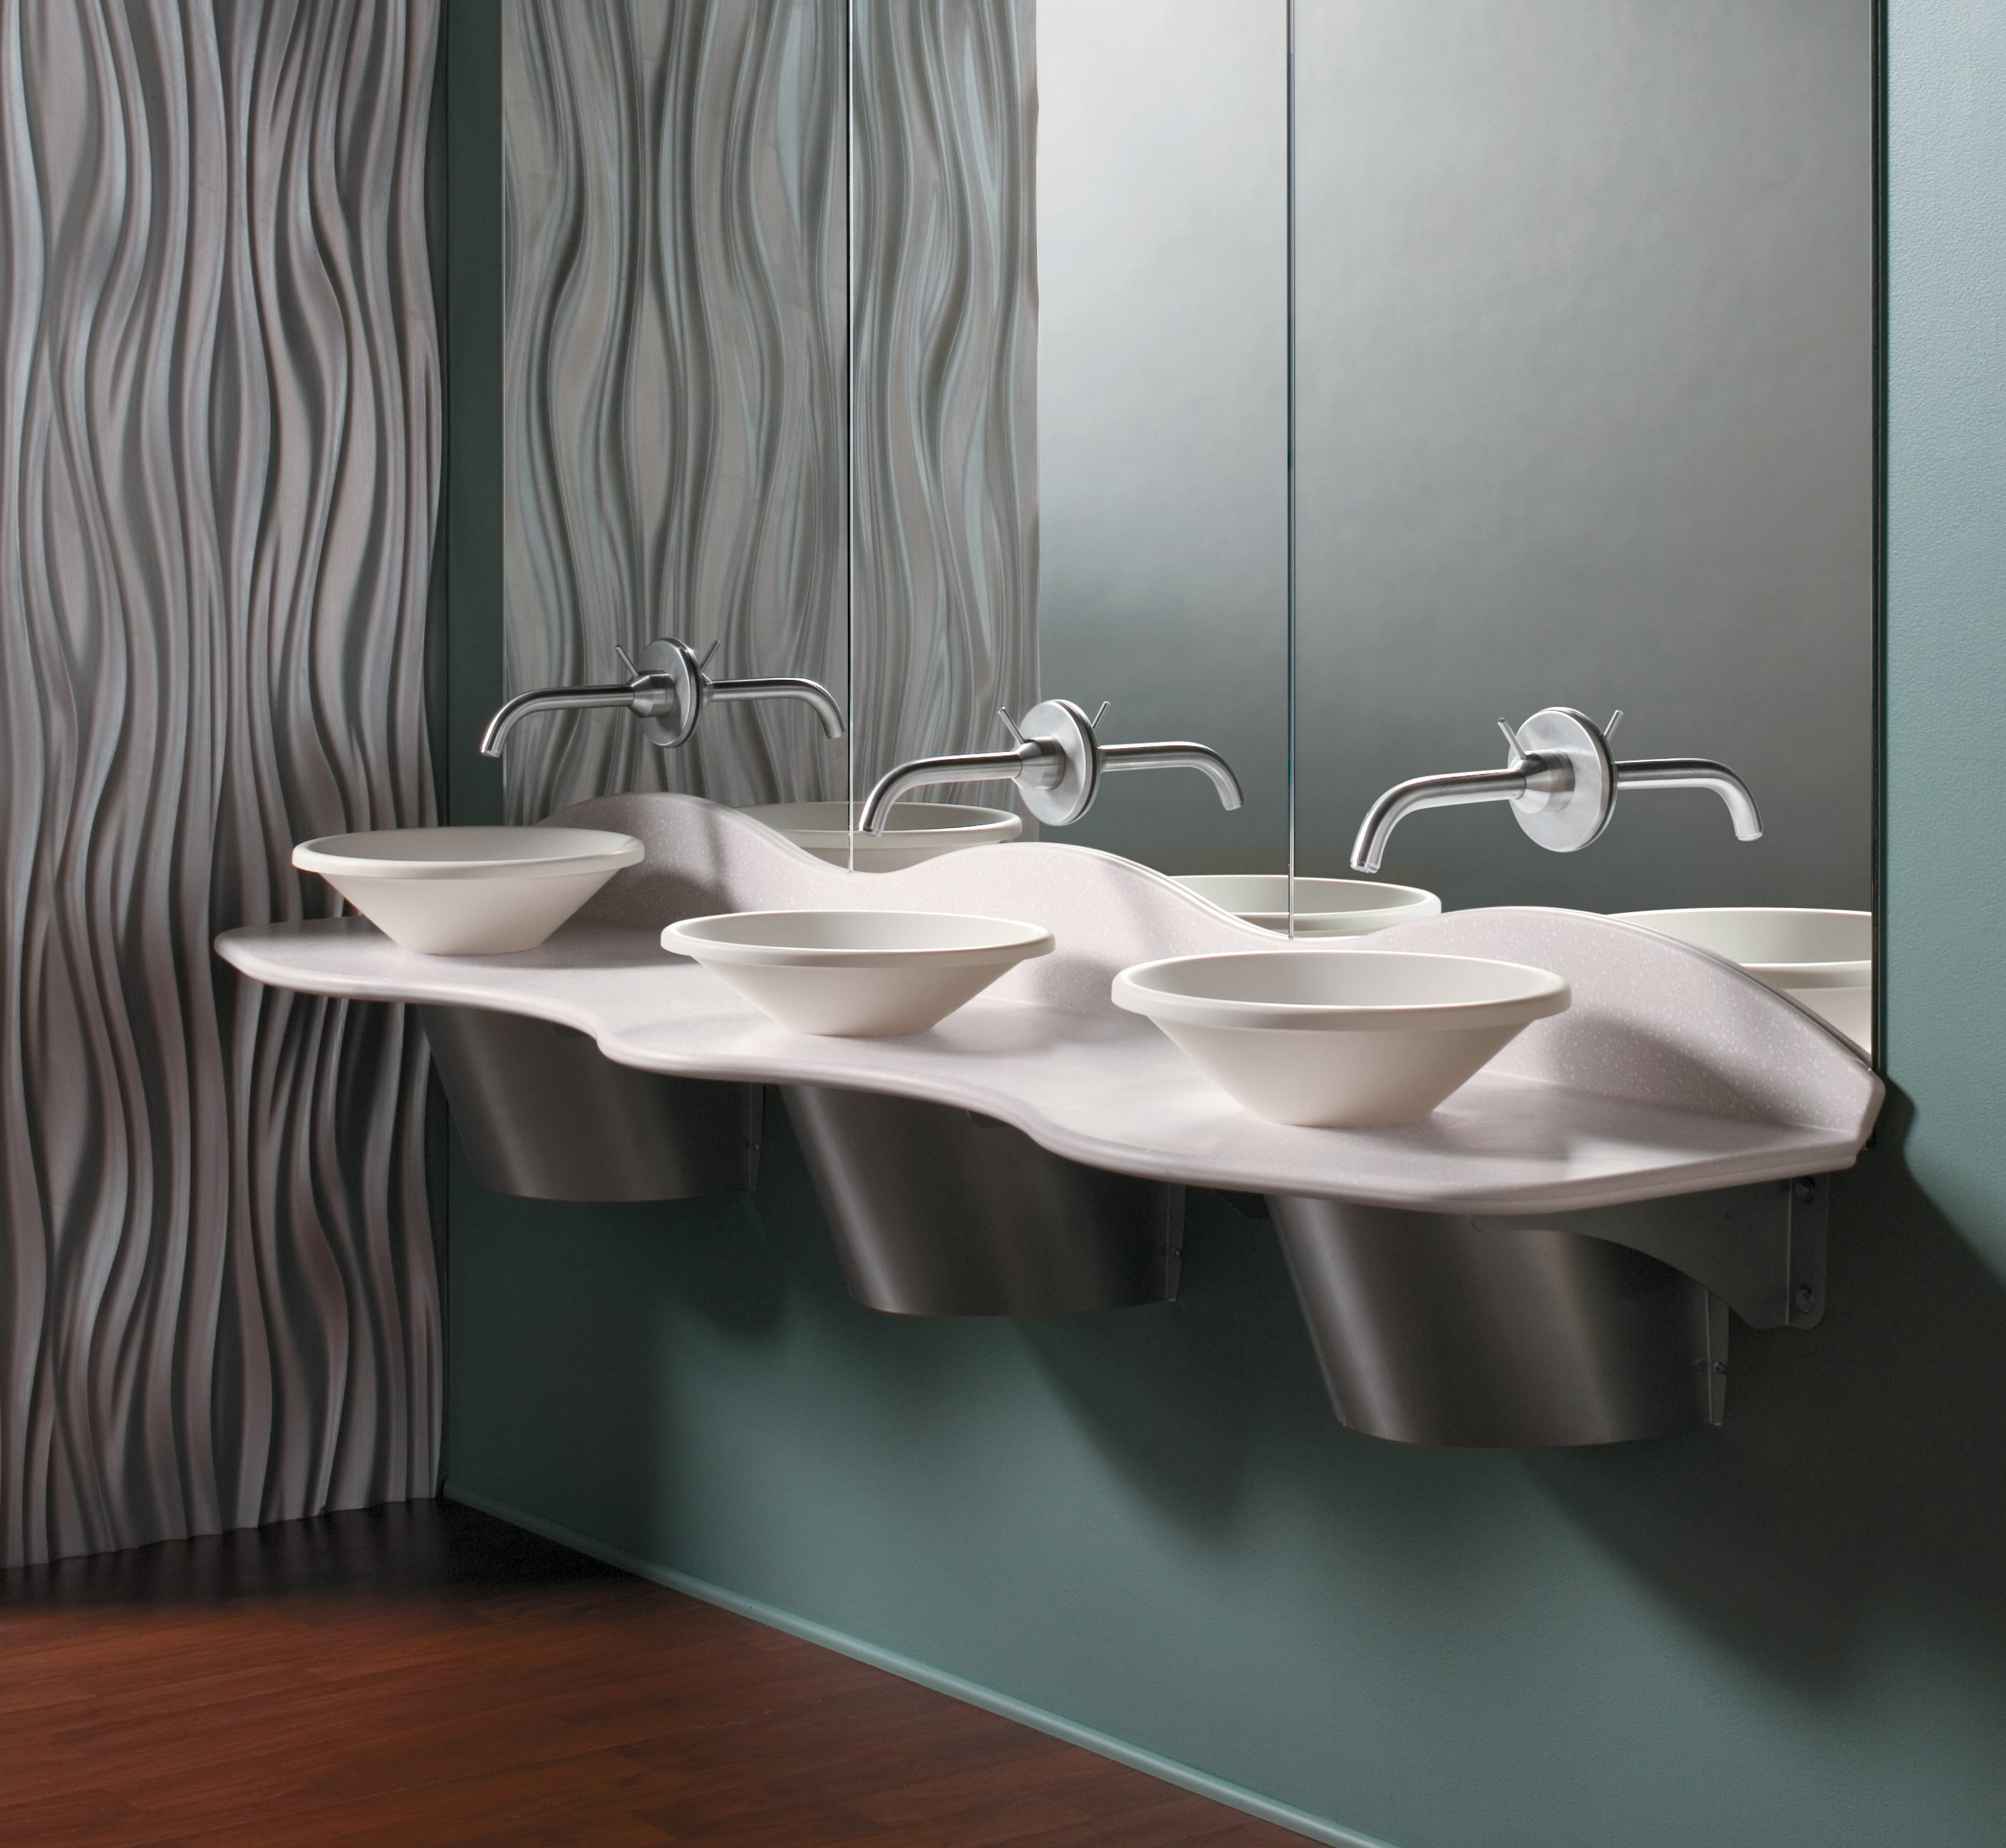 Bradley Bathroom Partitions Property omnideck with vessel bowls  bradley corporation